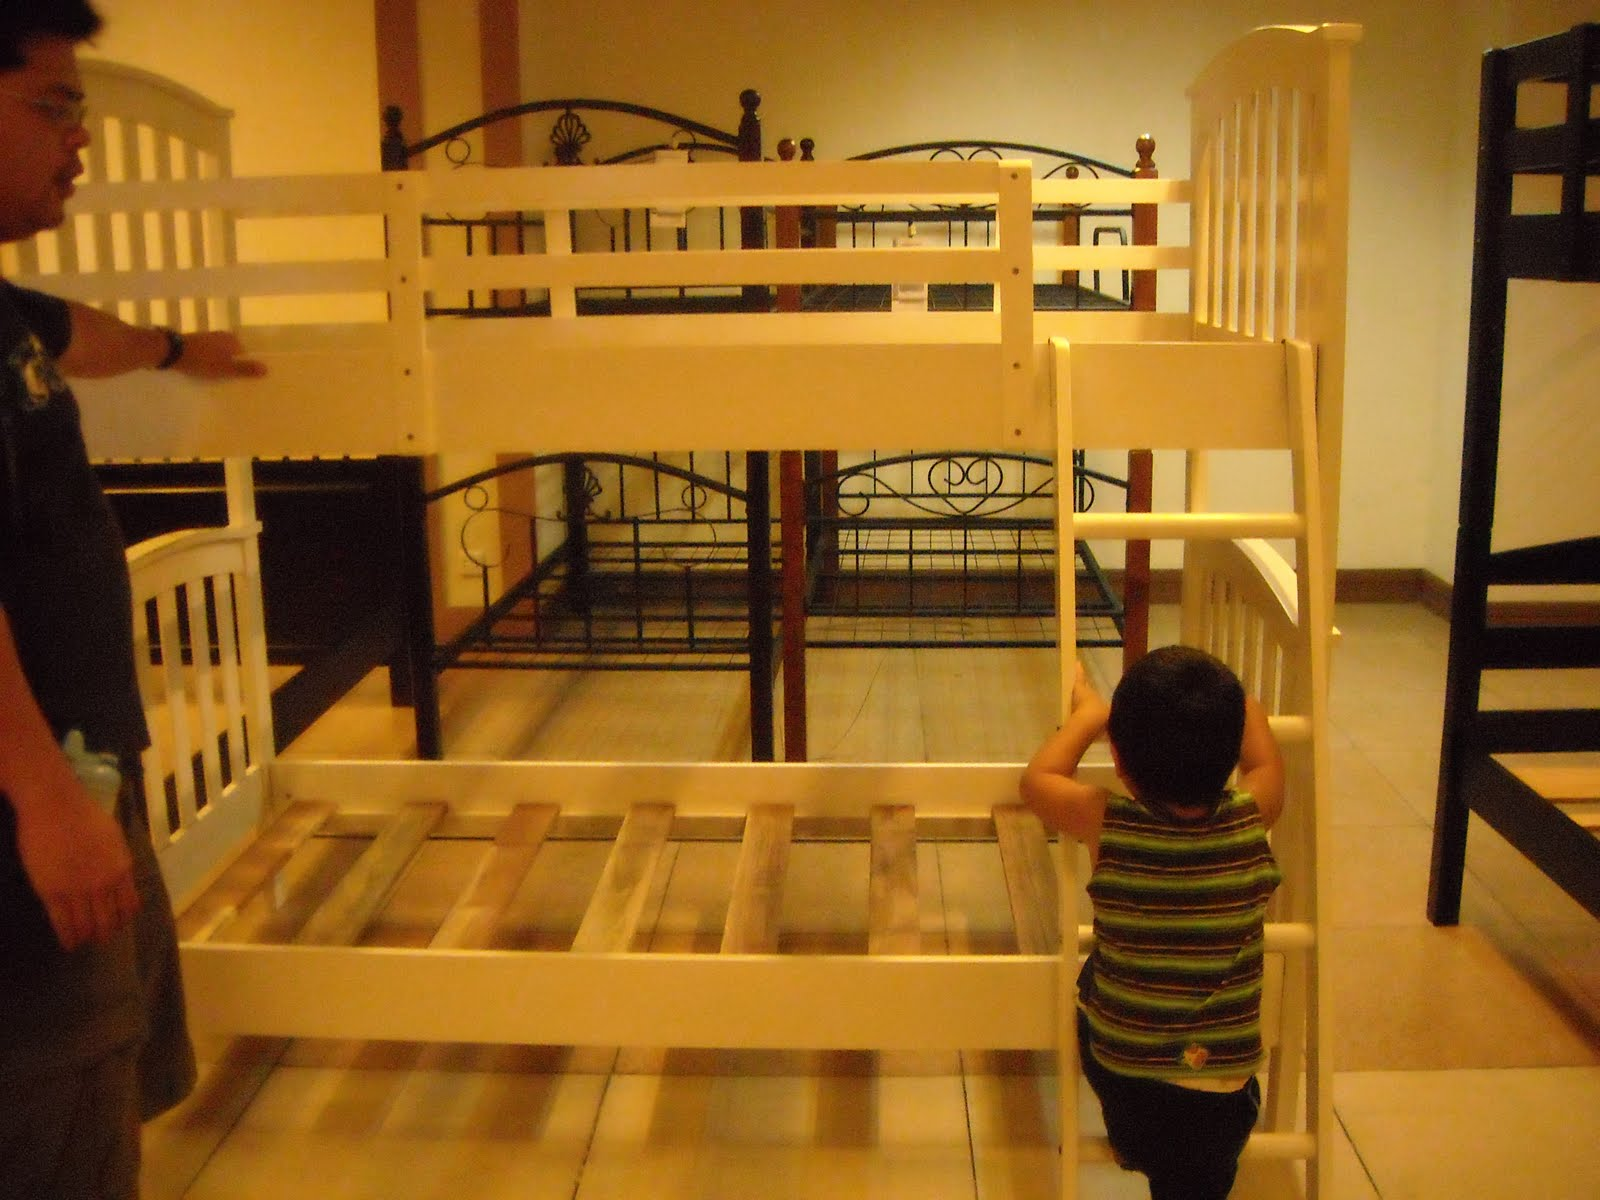 Double deck bed designs for small spaces diy woodworking for Double deck bed design